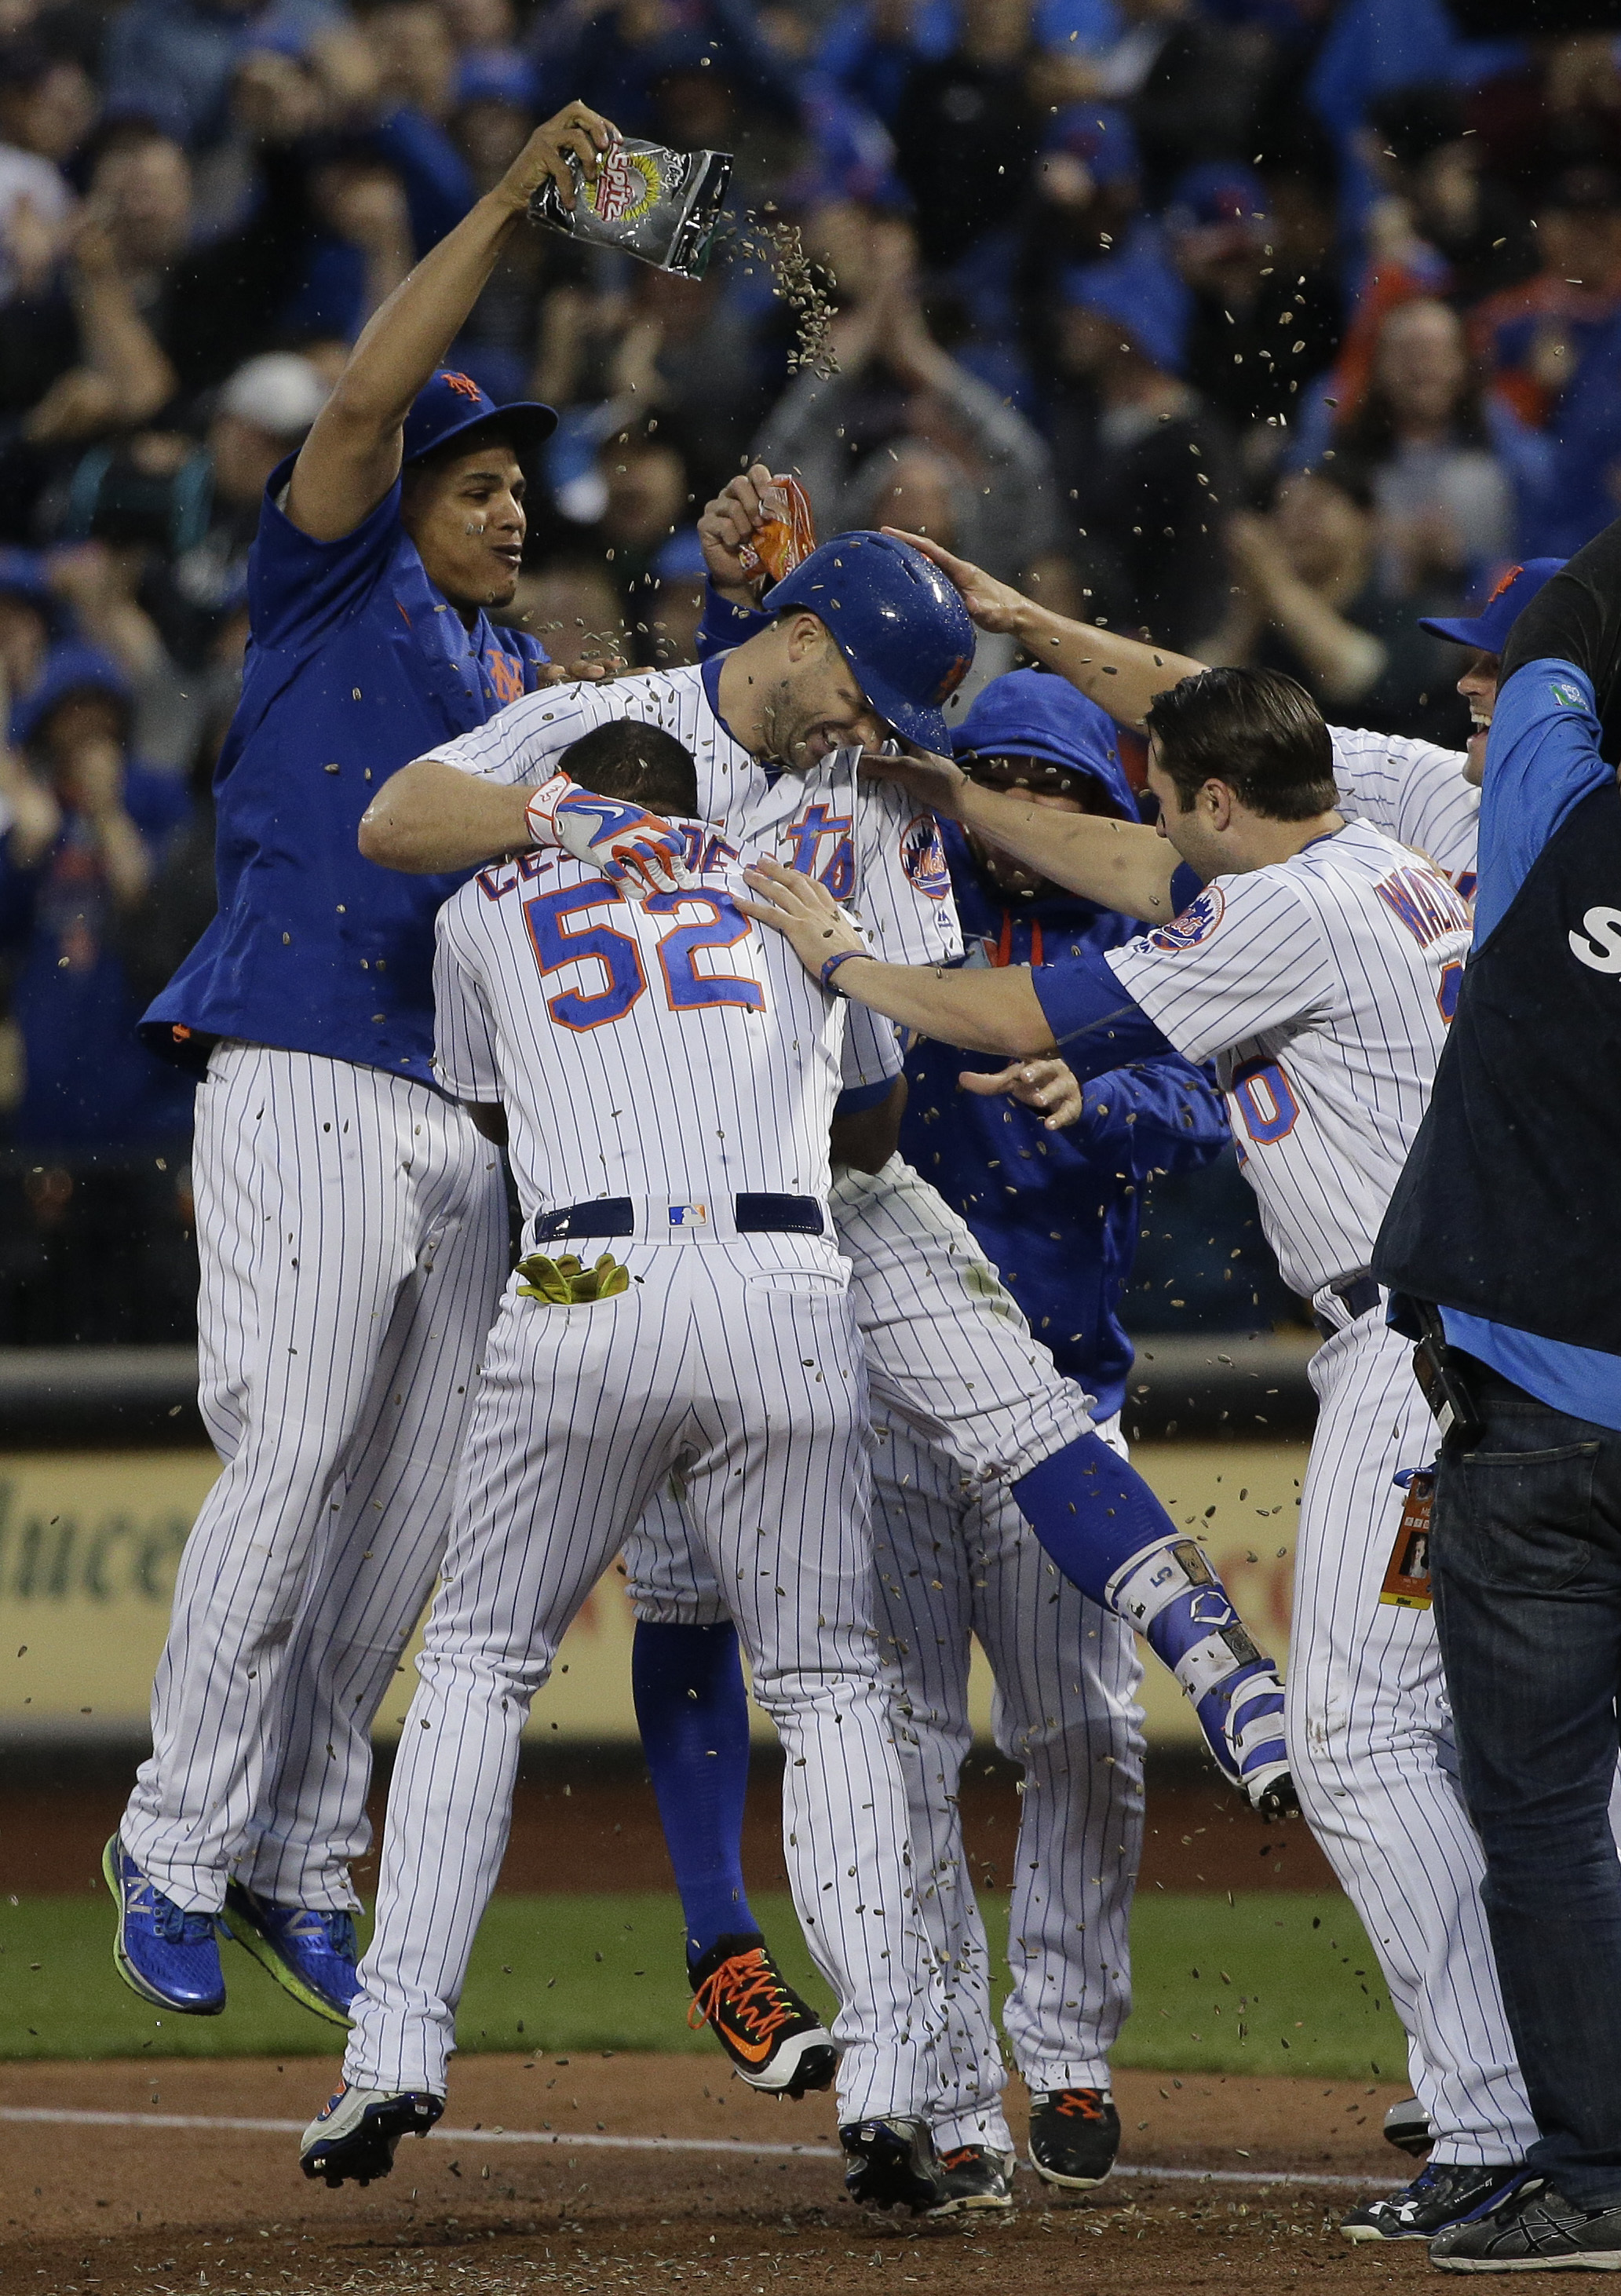 New York Mets' David Wright, center, is showered with sunflower seeds by teammates after driving in the game-winning run with a bases loaded single in the ninth inning of a baseball game against the Milwaukee Brewers, Saturday, May 21, 2016, in New York.